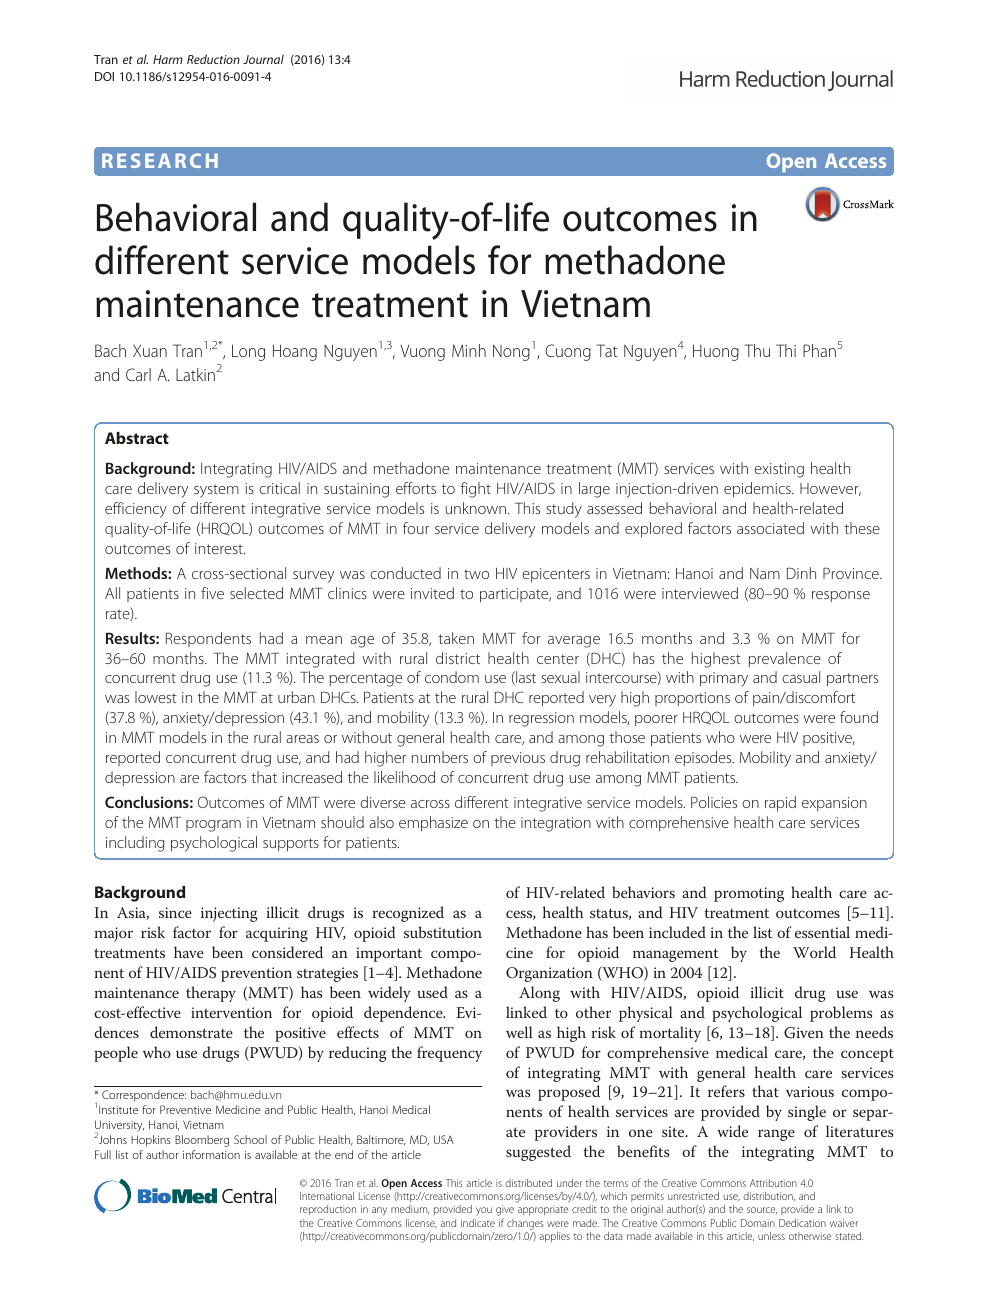 Behavioral And Quality Of Life Outcomes In Different Service Models For Methadone Maintenance Treatment In Vietnam Topic Of Research Paper In Economics And Business Download Scholarly Article Pdf And Read For Free On